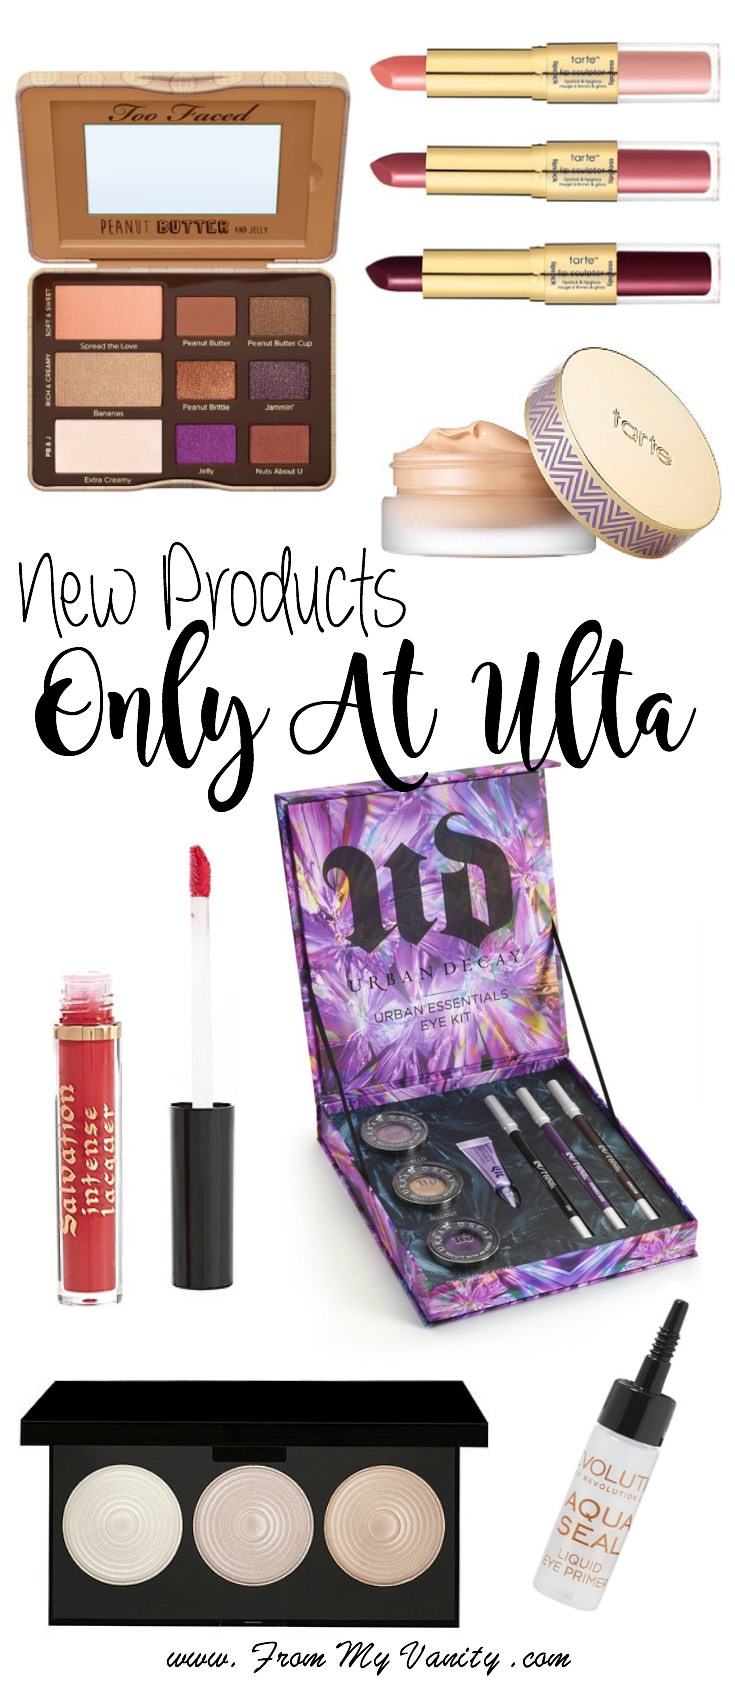 So many new products that you can get only at Ulta! I need to check these out!